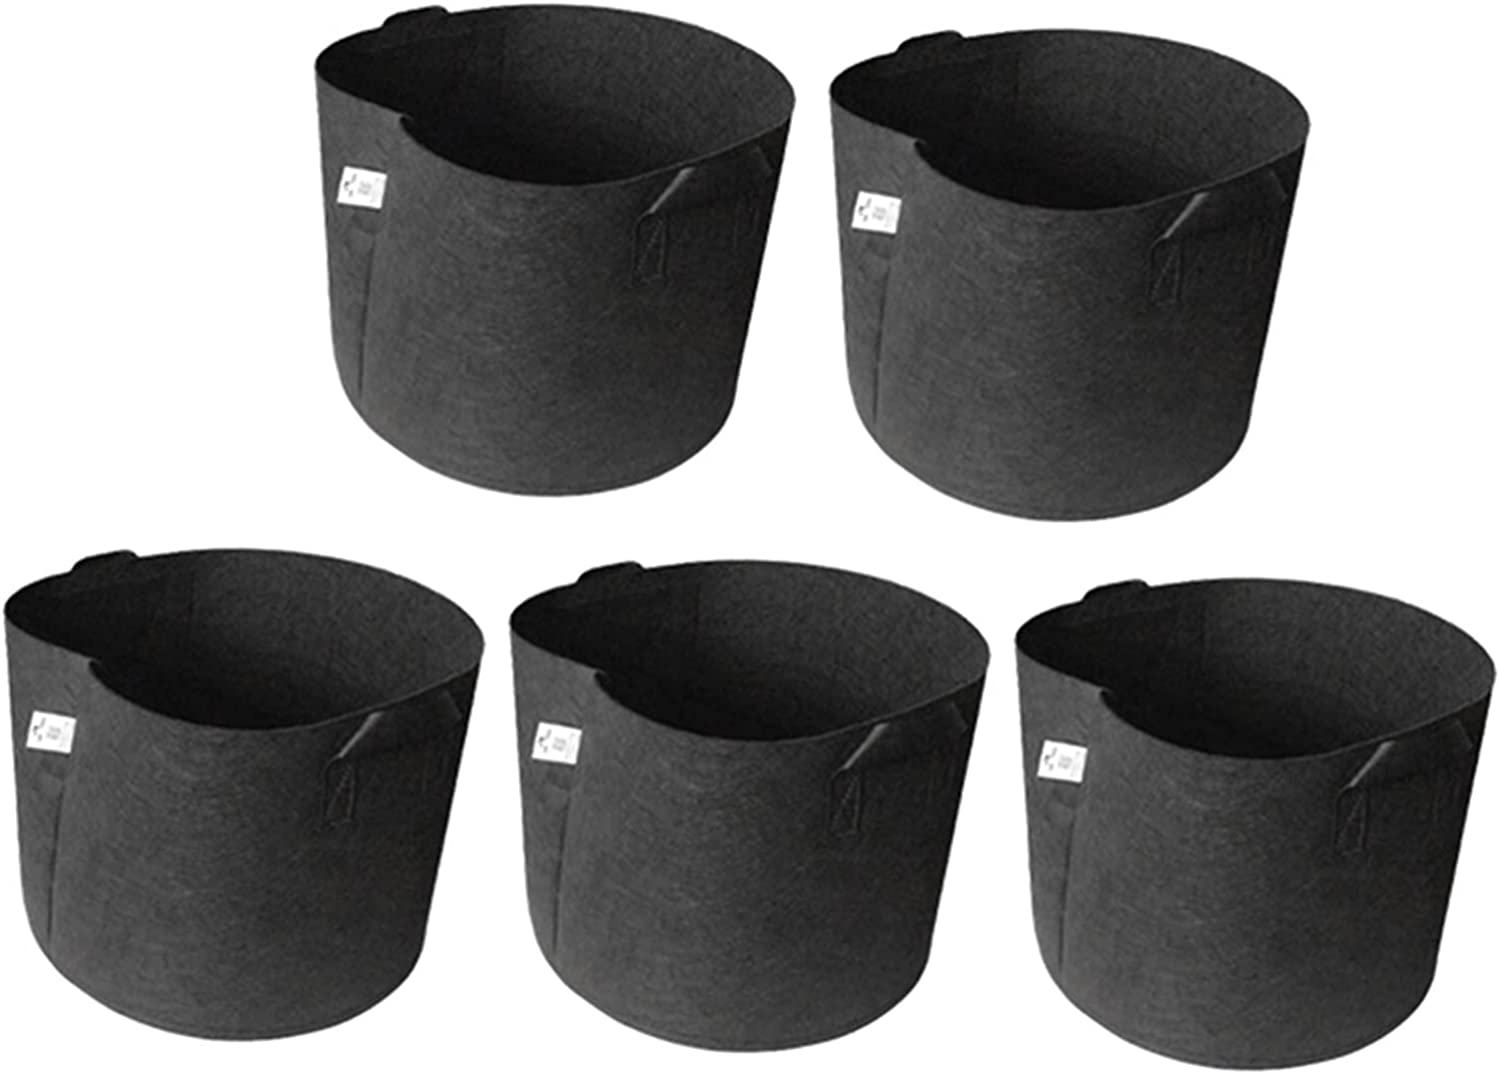 Xiaobaicai Max 43% OFF 5-Pack Heavy Duty Thickened Nonwoven Pots 5 ☆ popular Grow Fabric